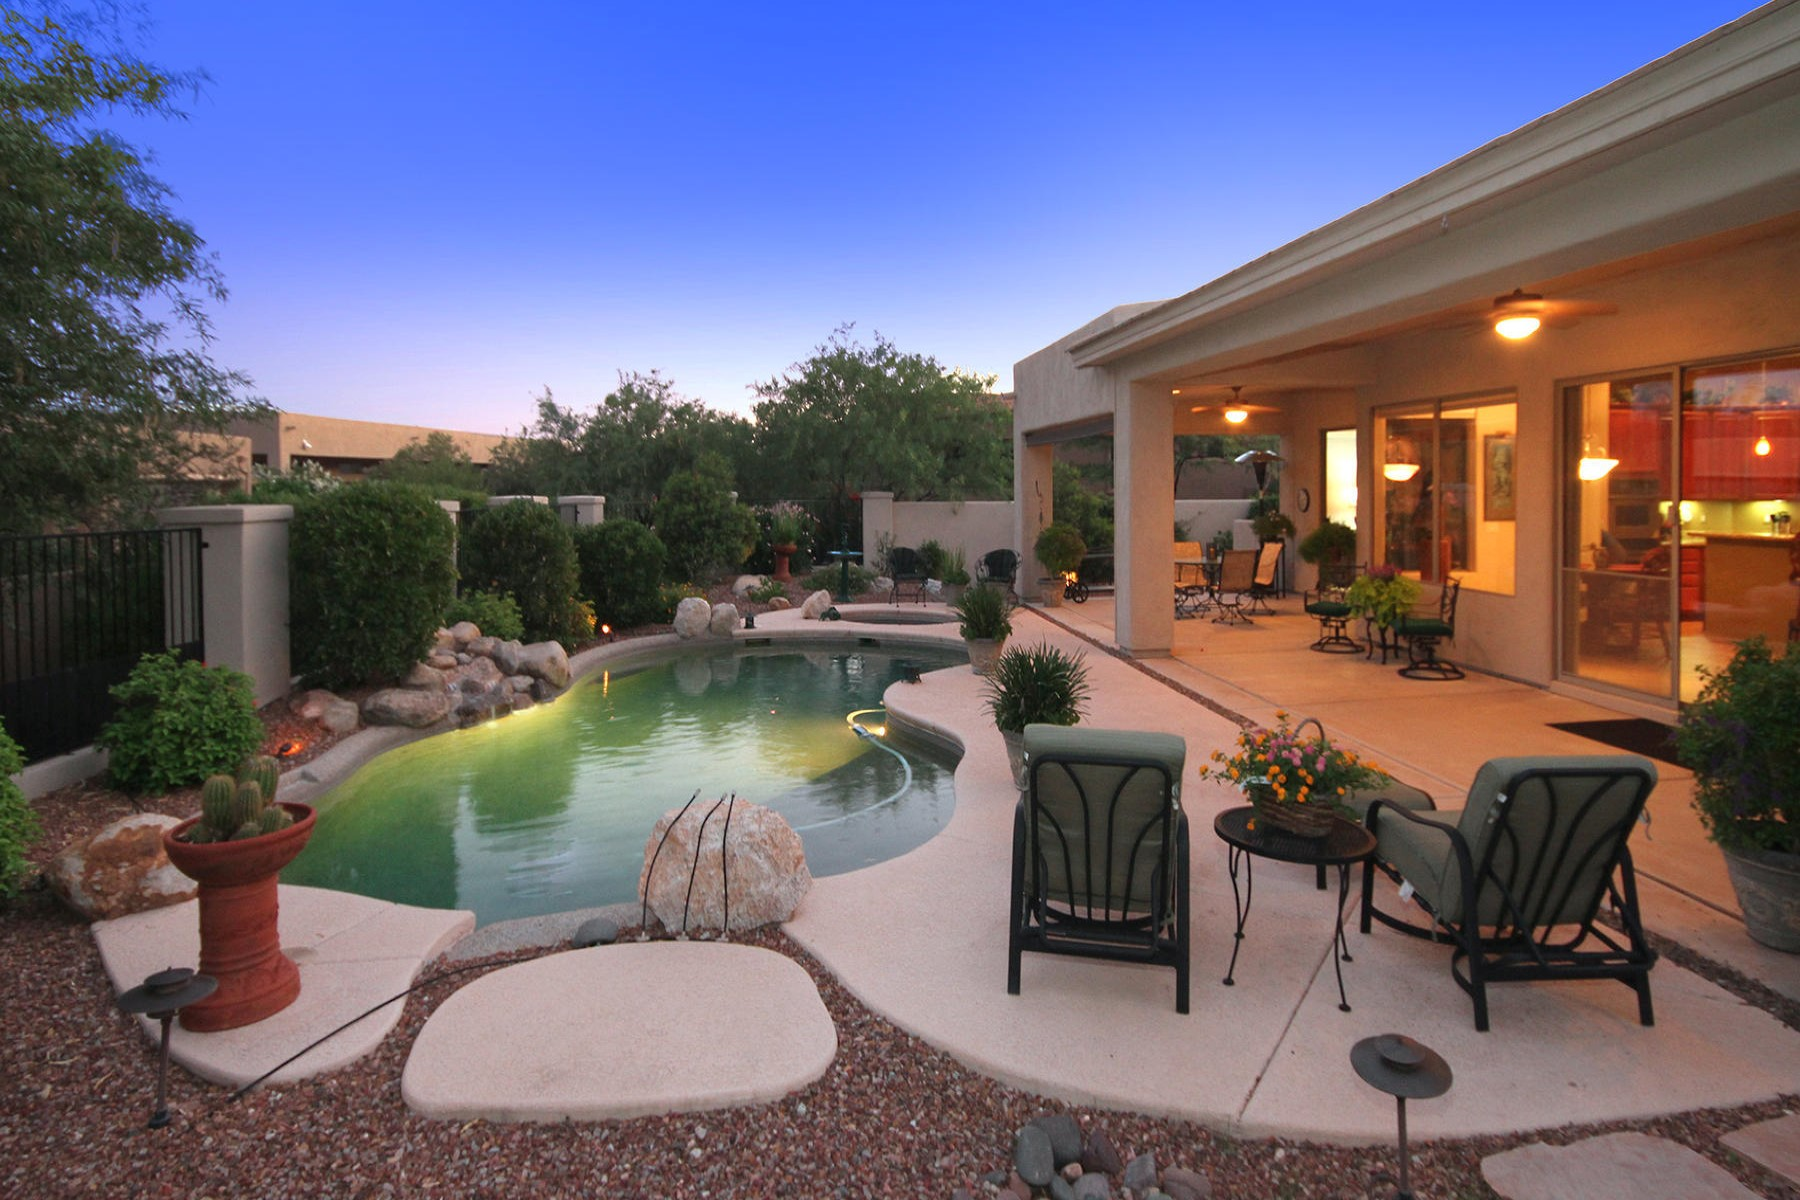 Single Family Home for Sale at Amazing Pepper Viner Home located on a Beautiful Lot in Golf Gated community. 13842 N Javelina Springs Place Oro Valley, Arizona 85755 United States